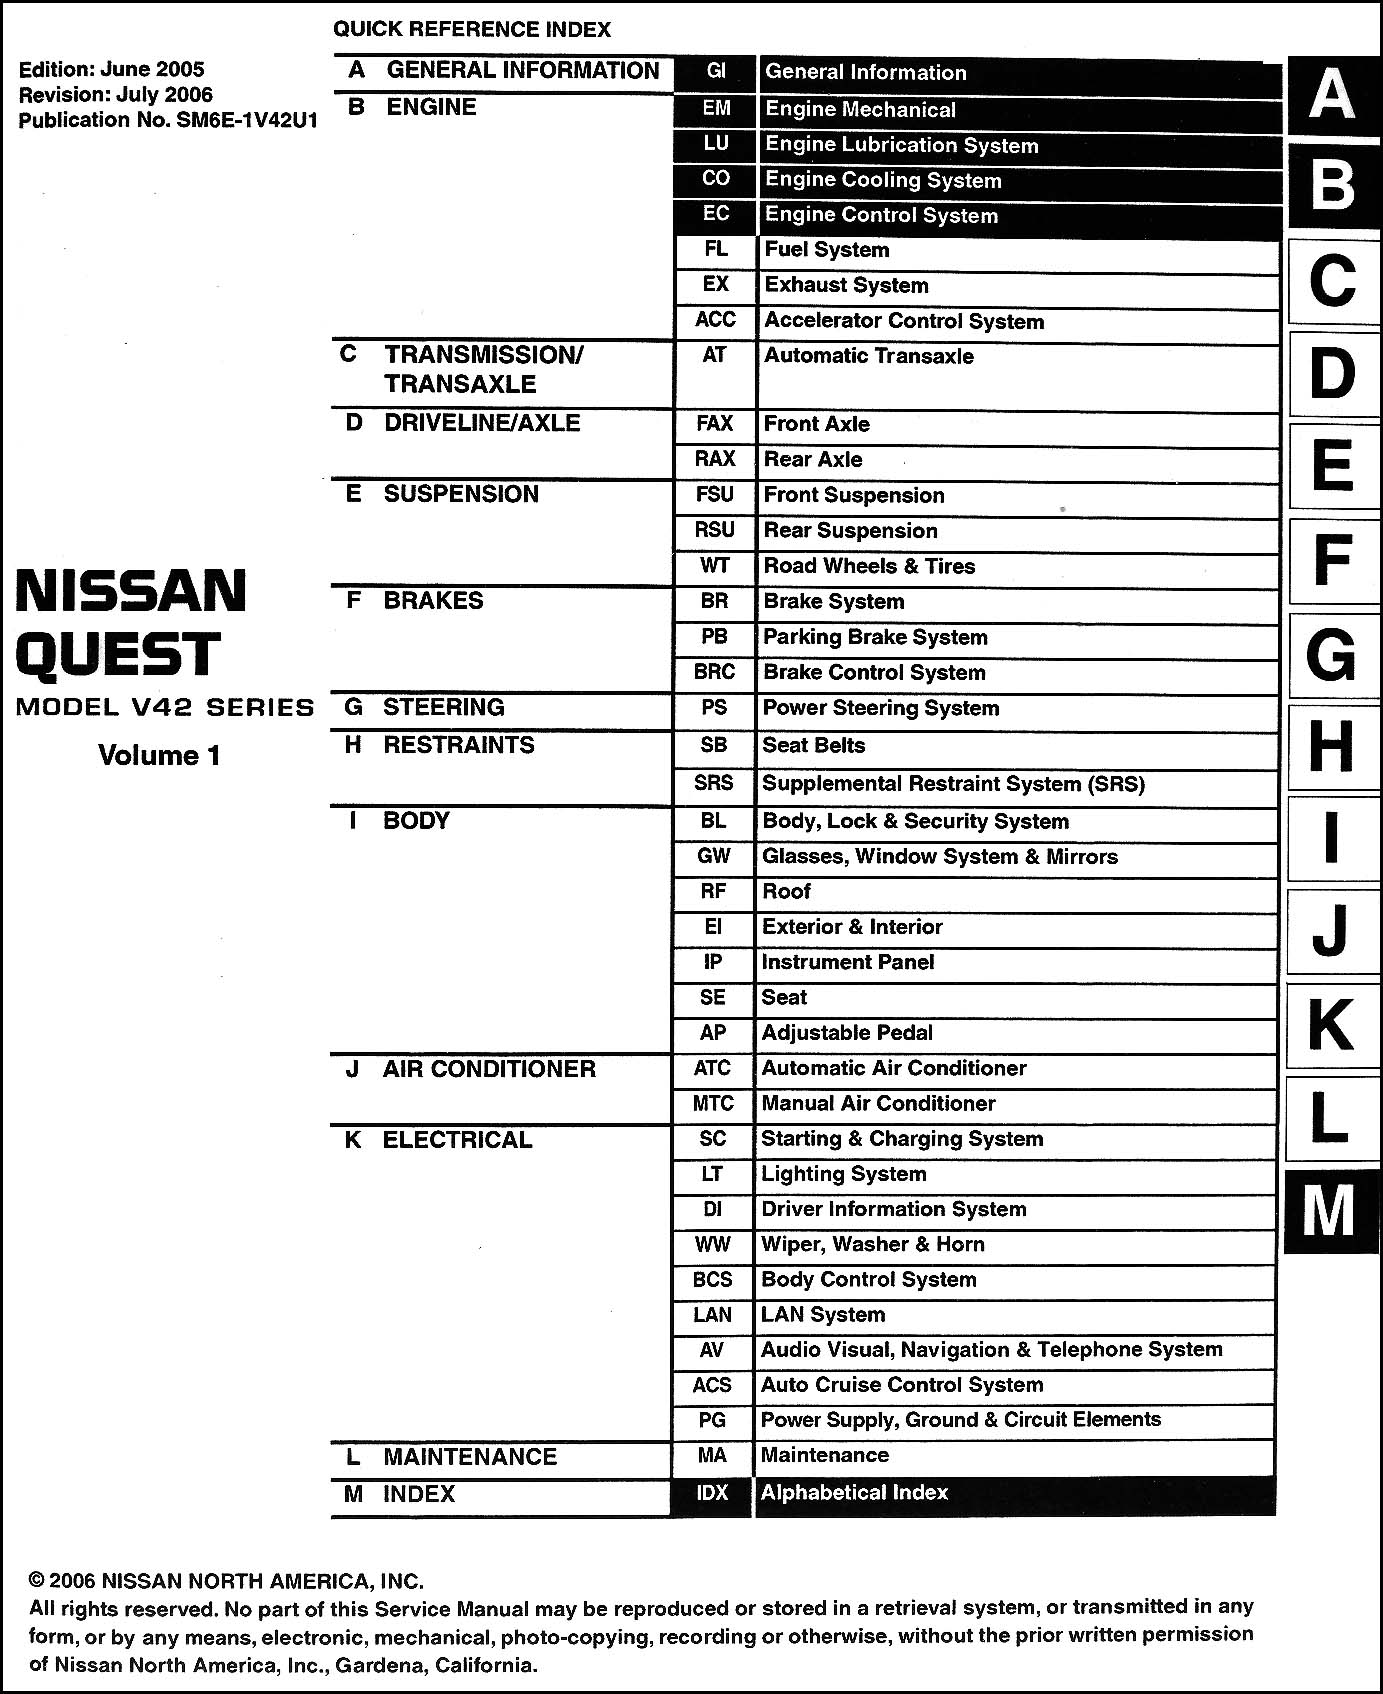 2011 Nissan Quest Fuse Diagram - Schematics Wiring Diagrams •